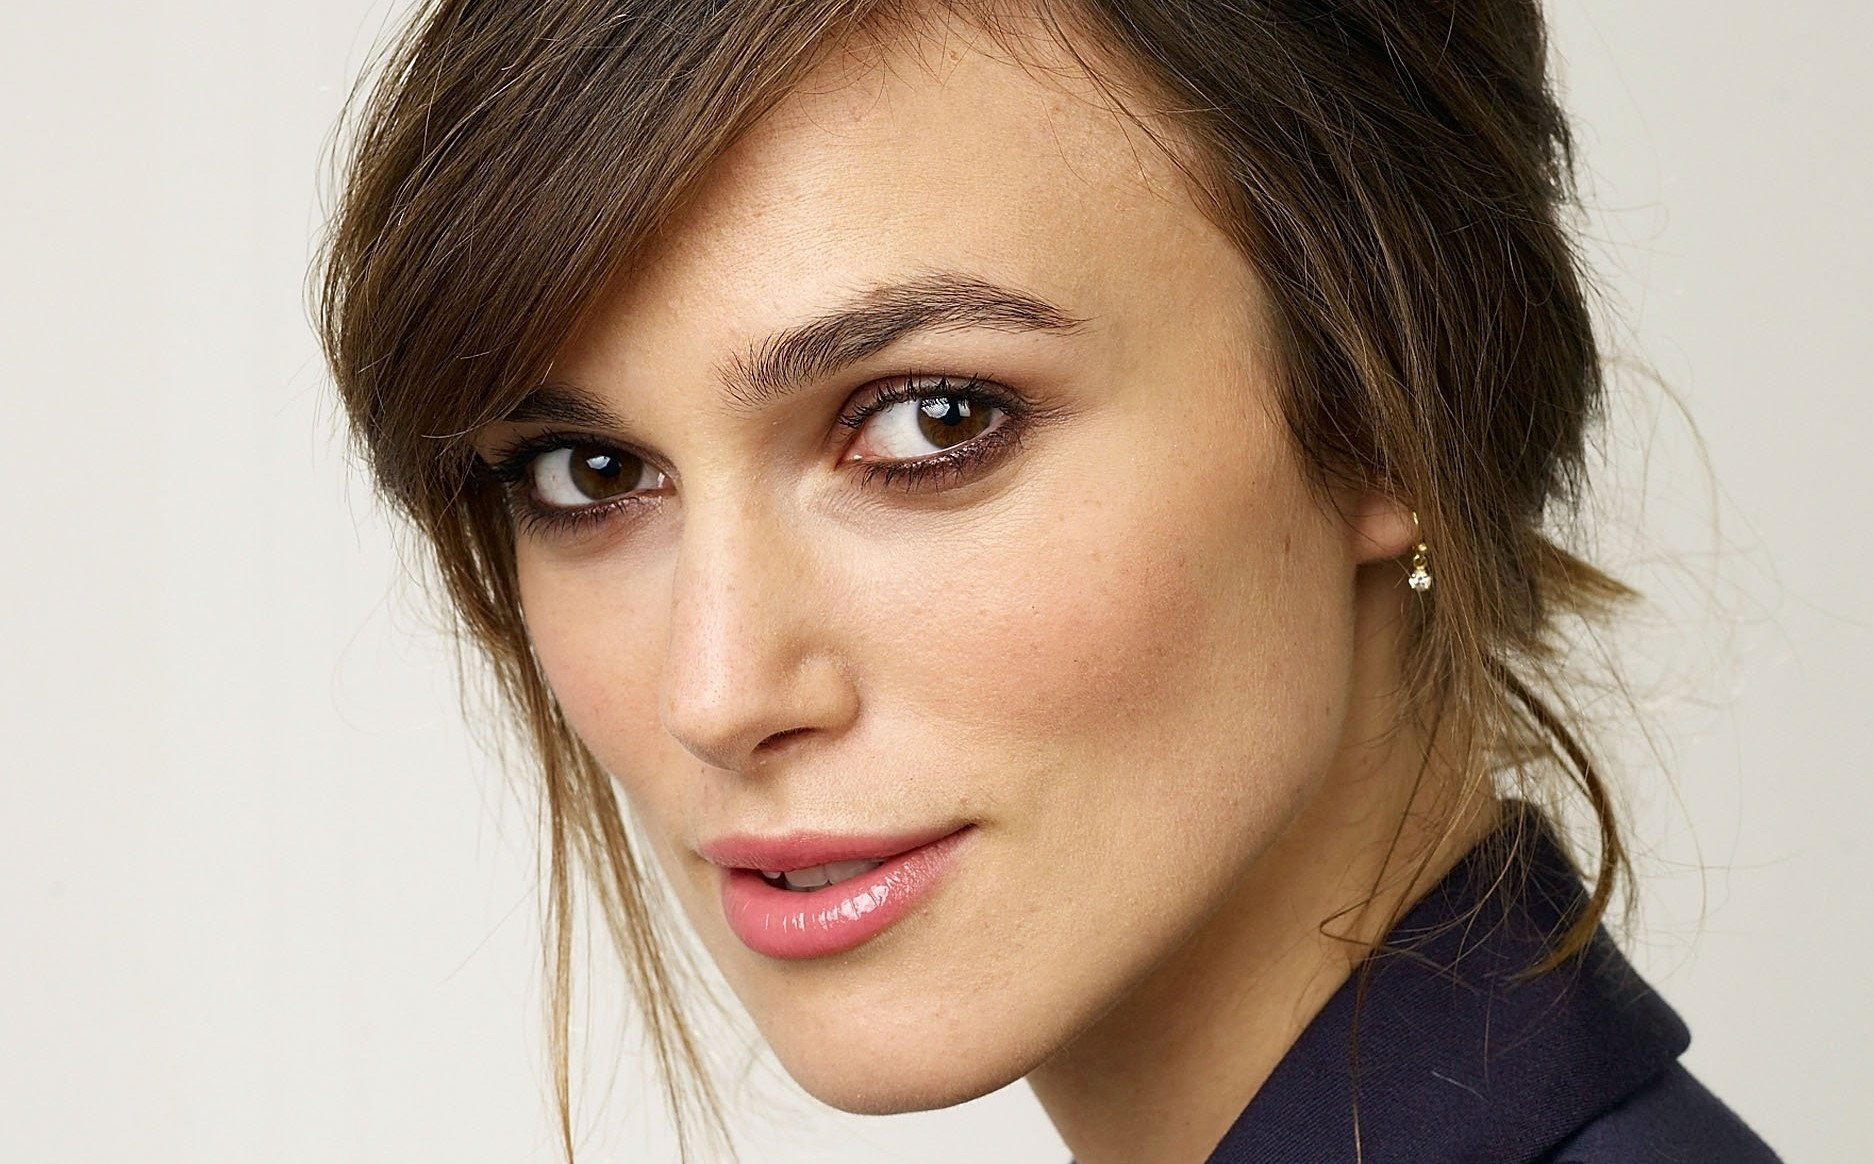 Keira Knightley HD Wallpapers  Keira Knightley HD Wallpapers